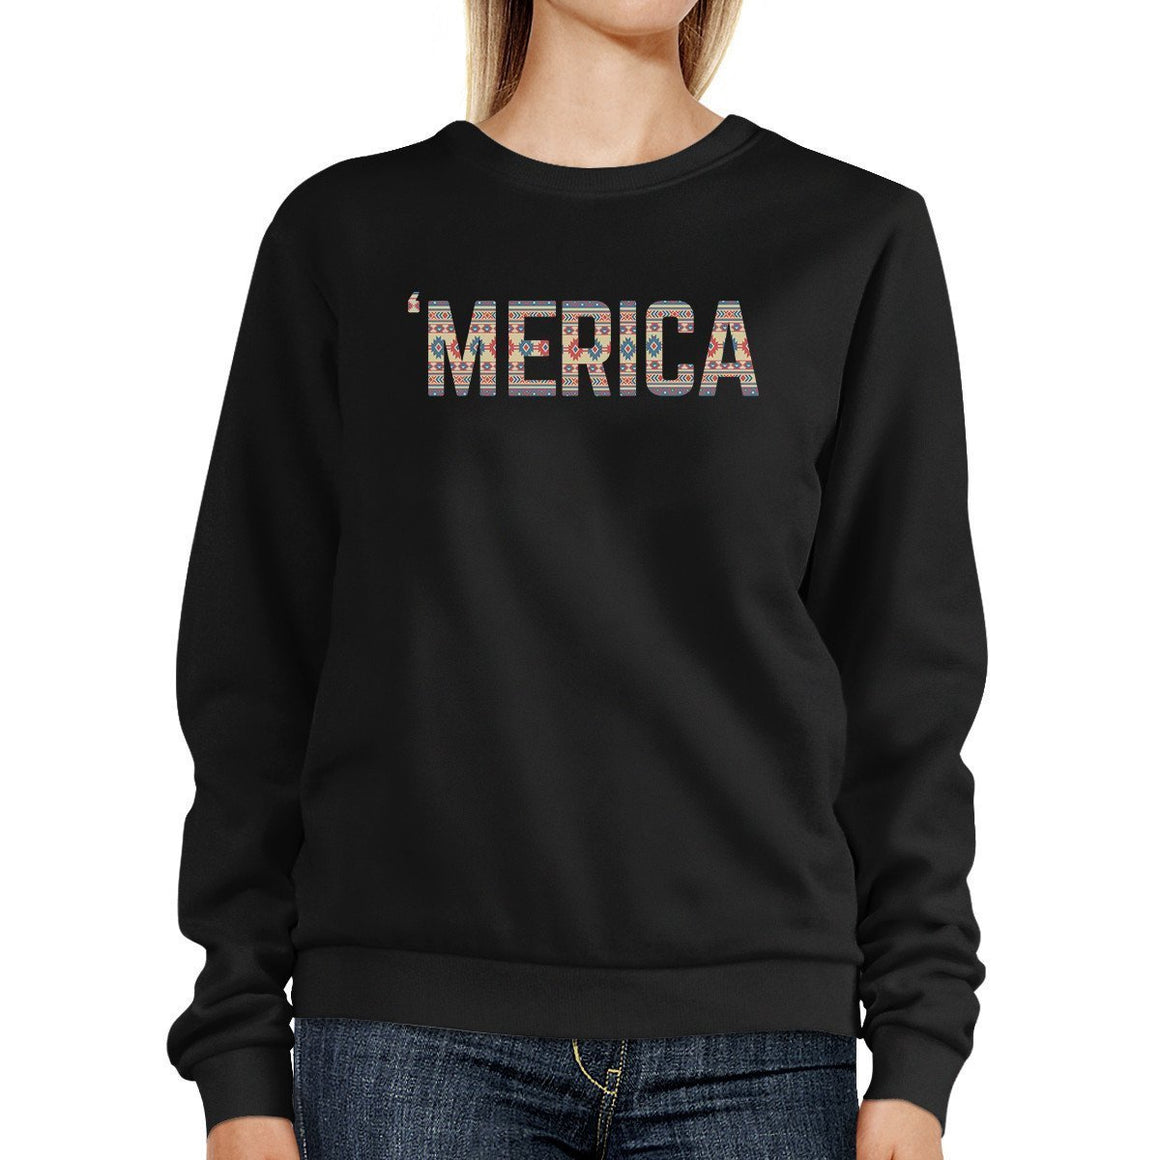 'Merica Unique Tribal Pattern Pullover Sweatshirt For 4th Of July